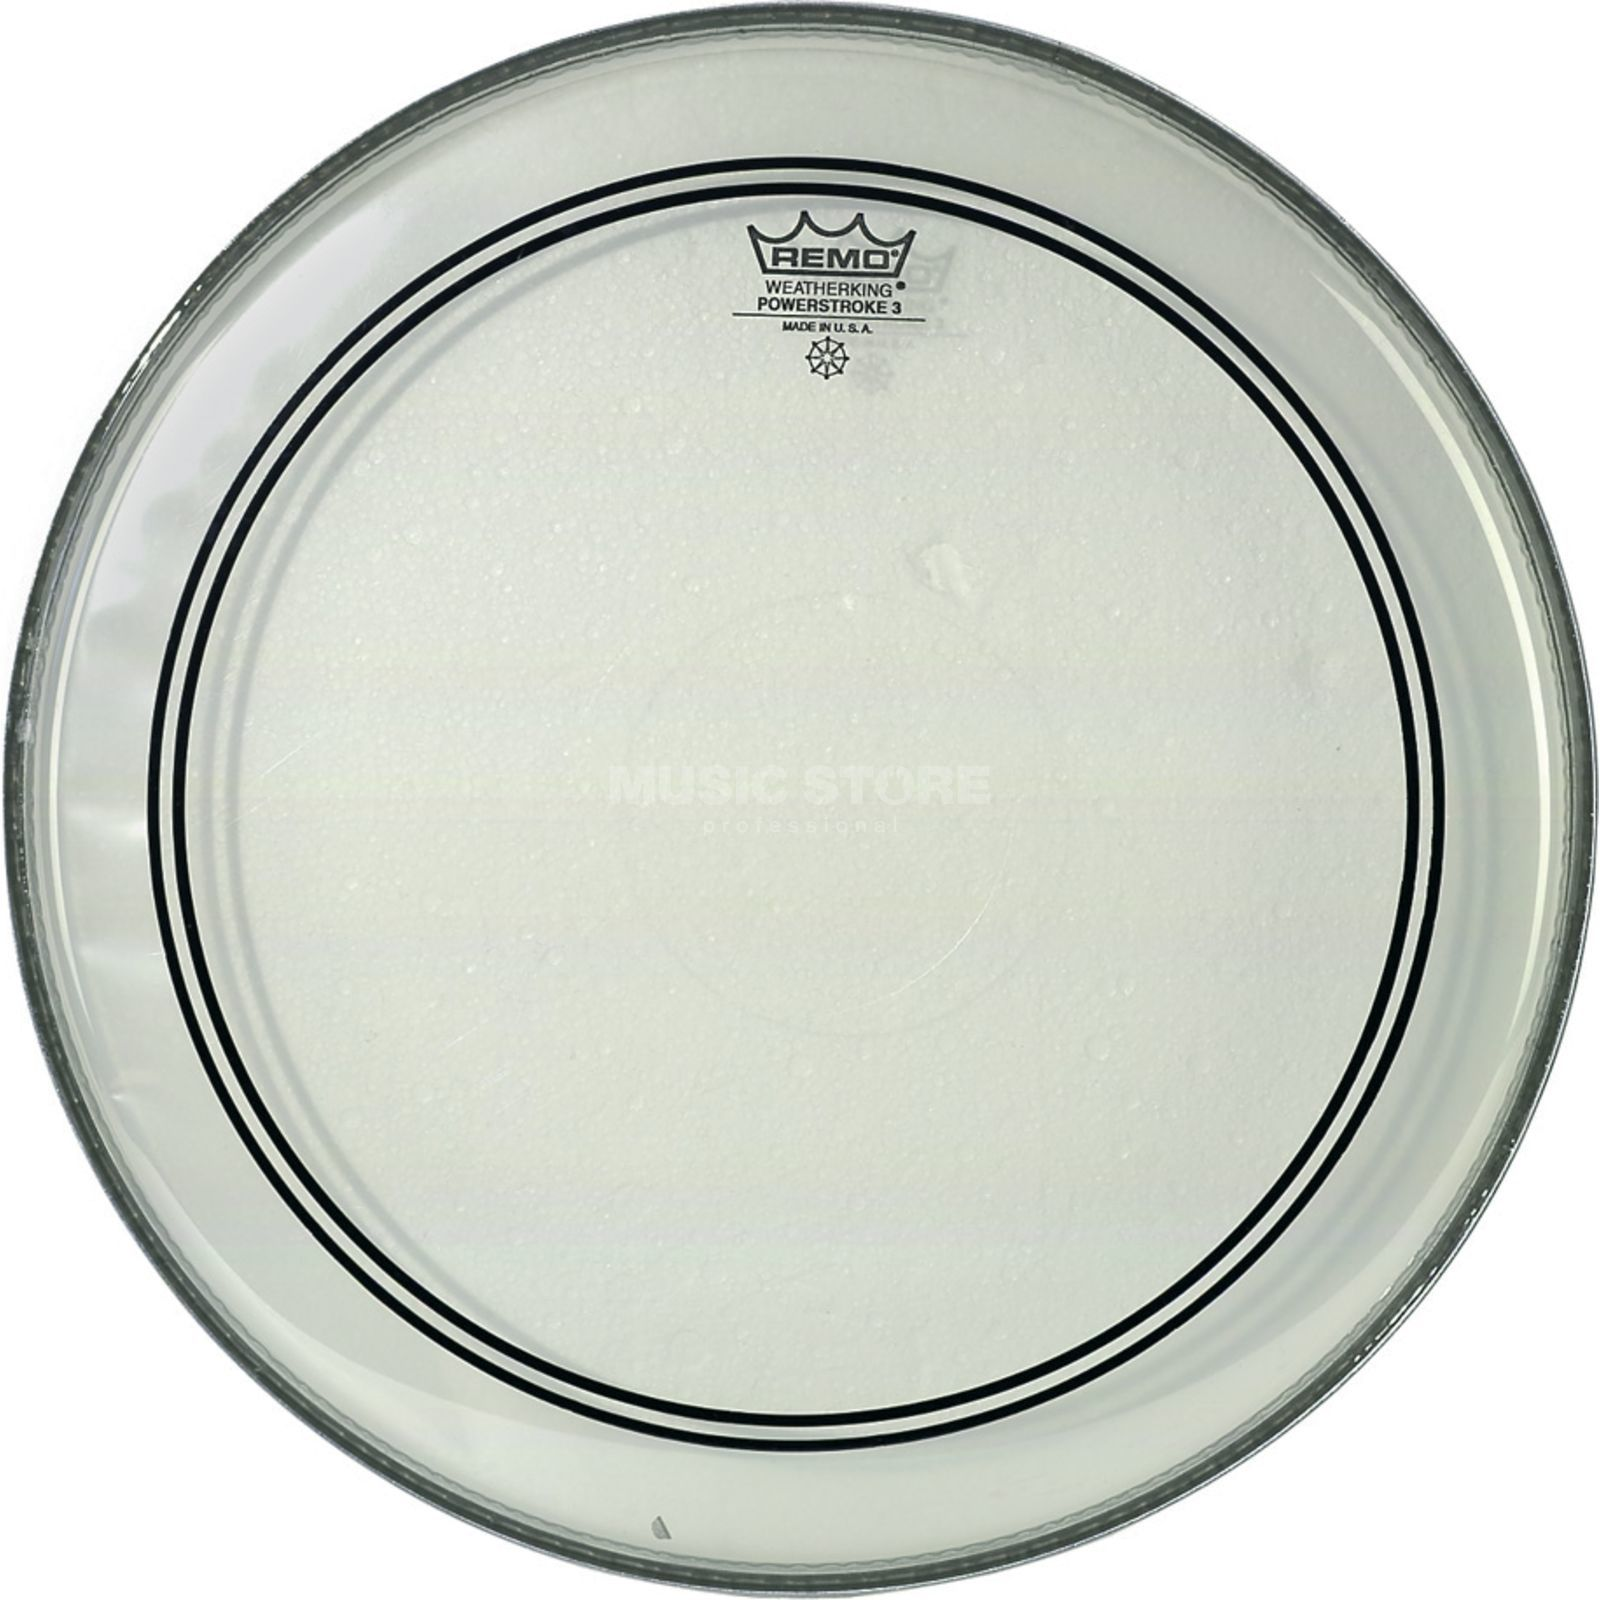 "Remo Powerstroke 3 Clear 13"", Tom Batter/Reso, Snare Batter Product Image"